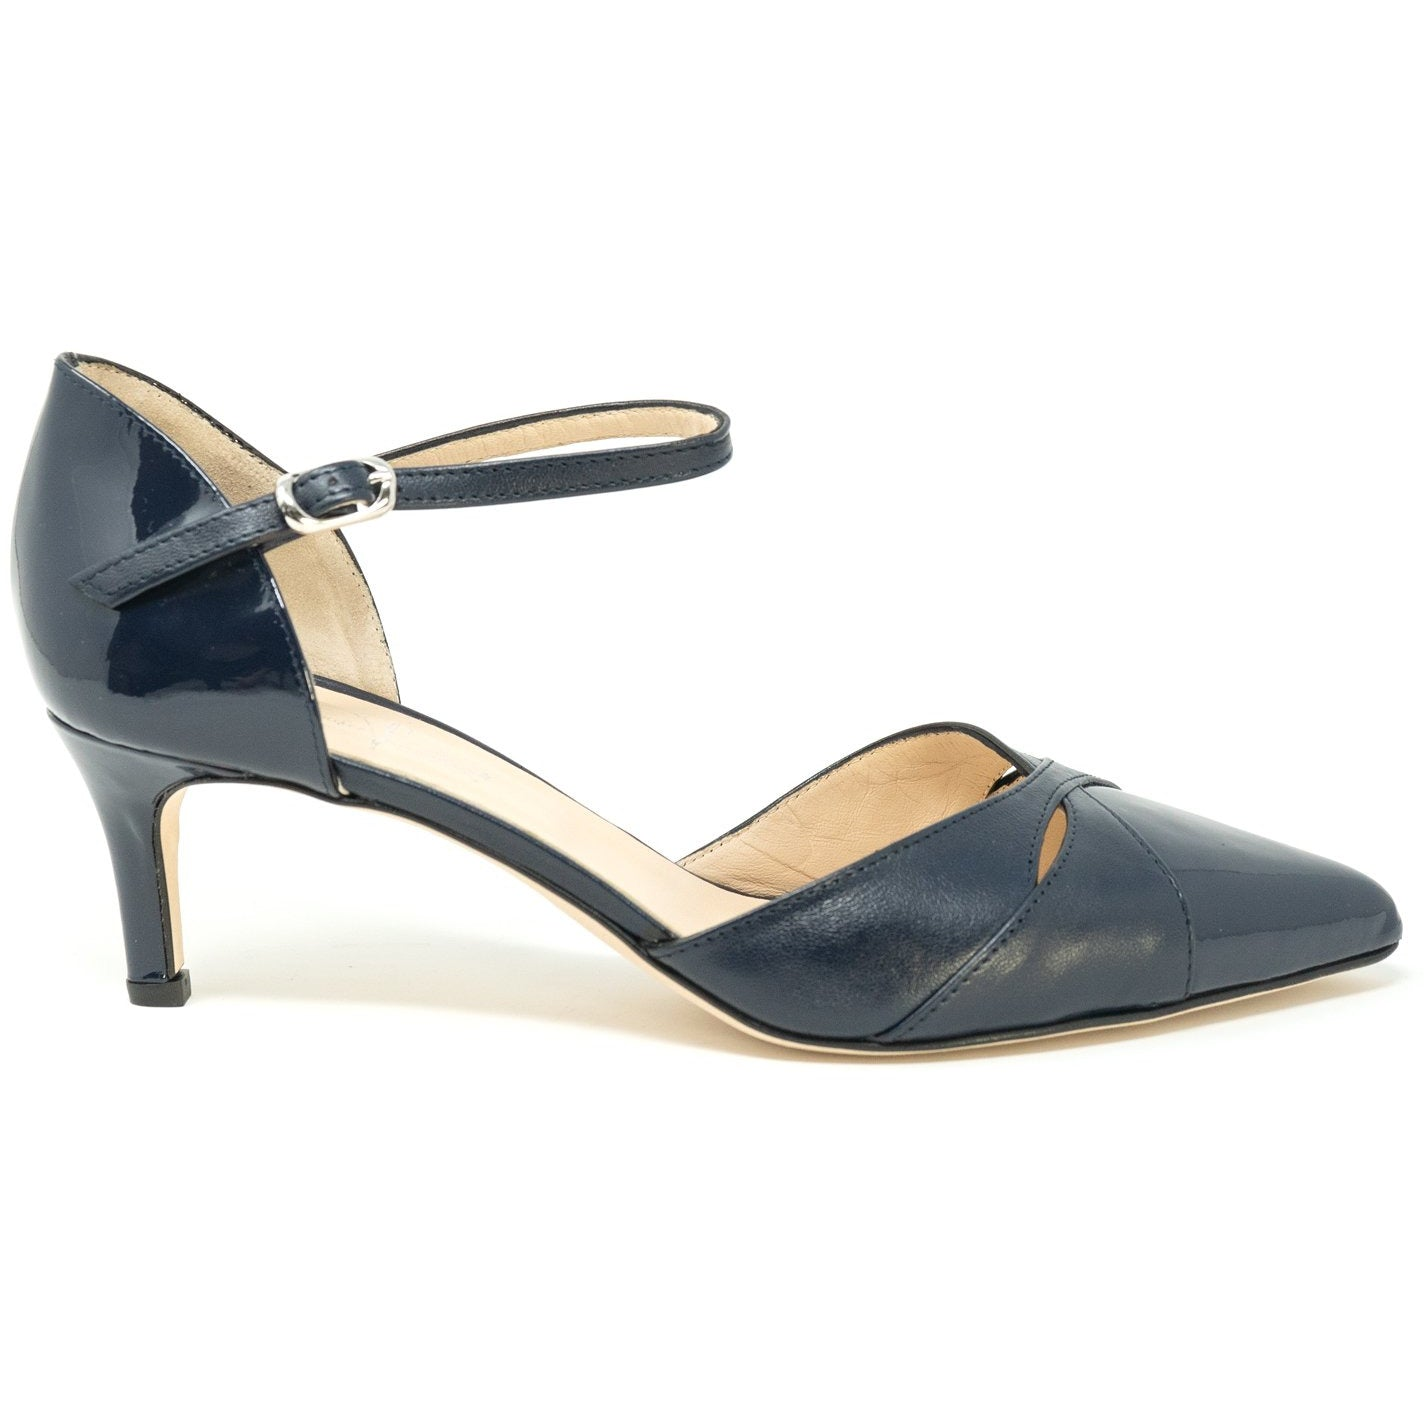 Women Leather Pumps in Patent Black Leather - Jennifer Tattanelli